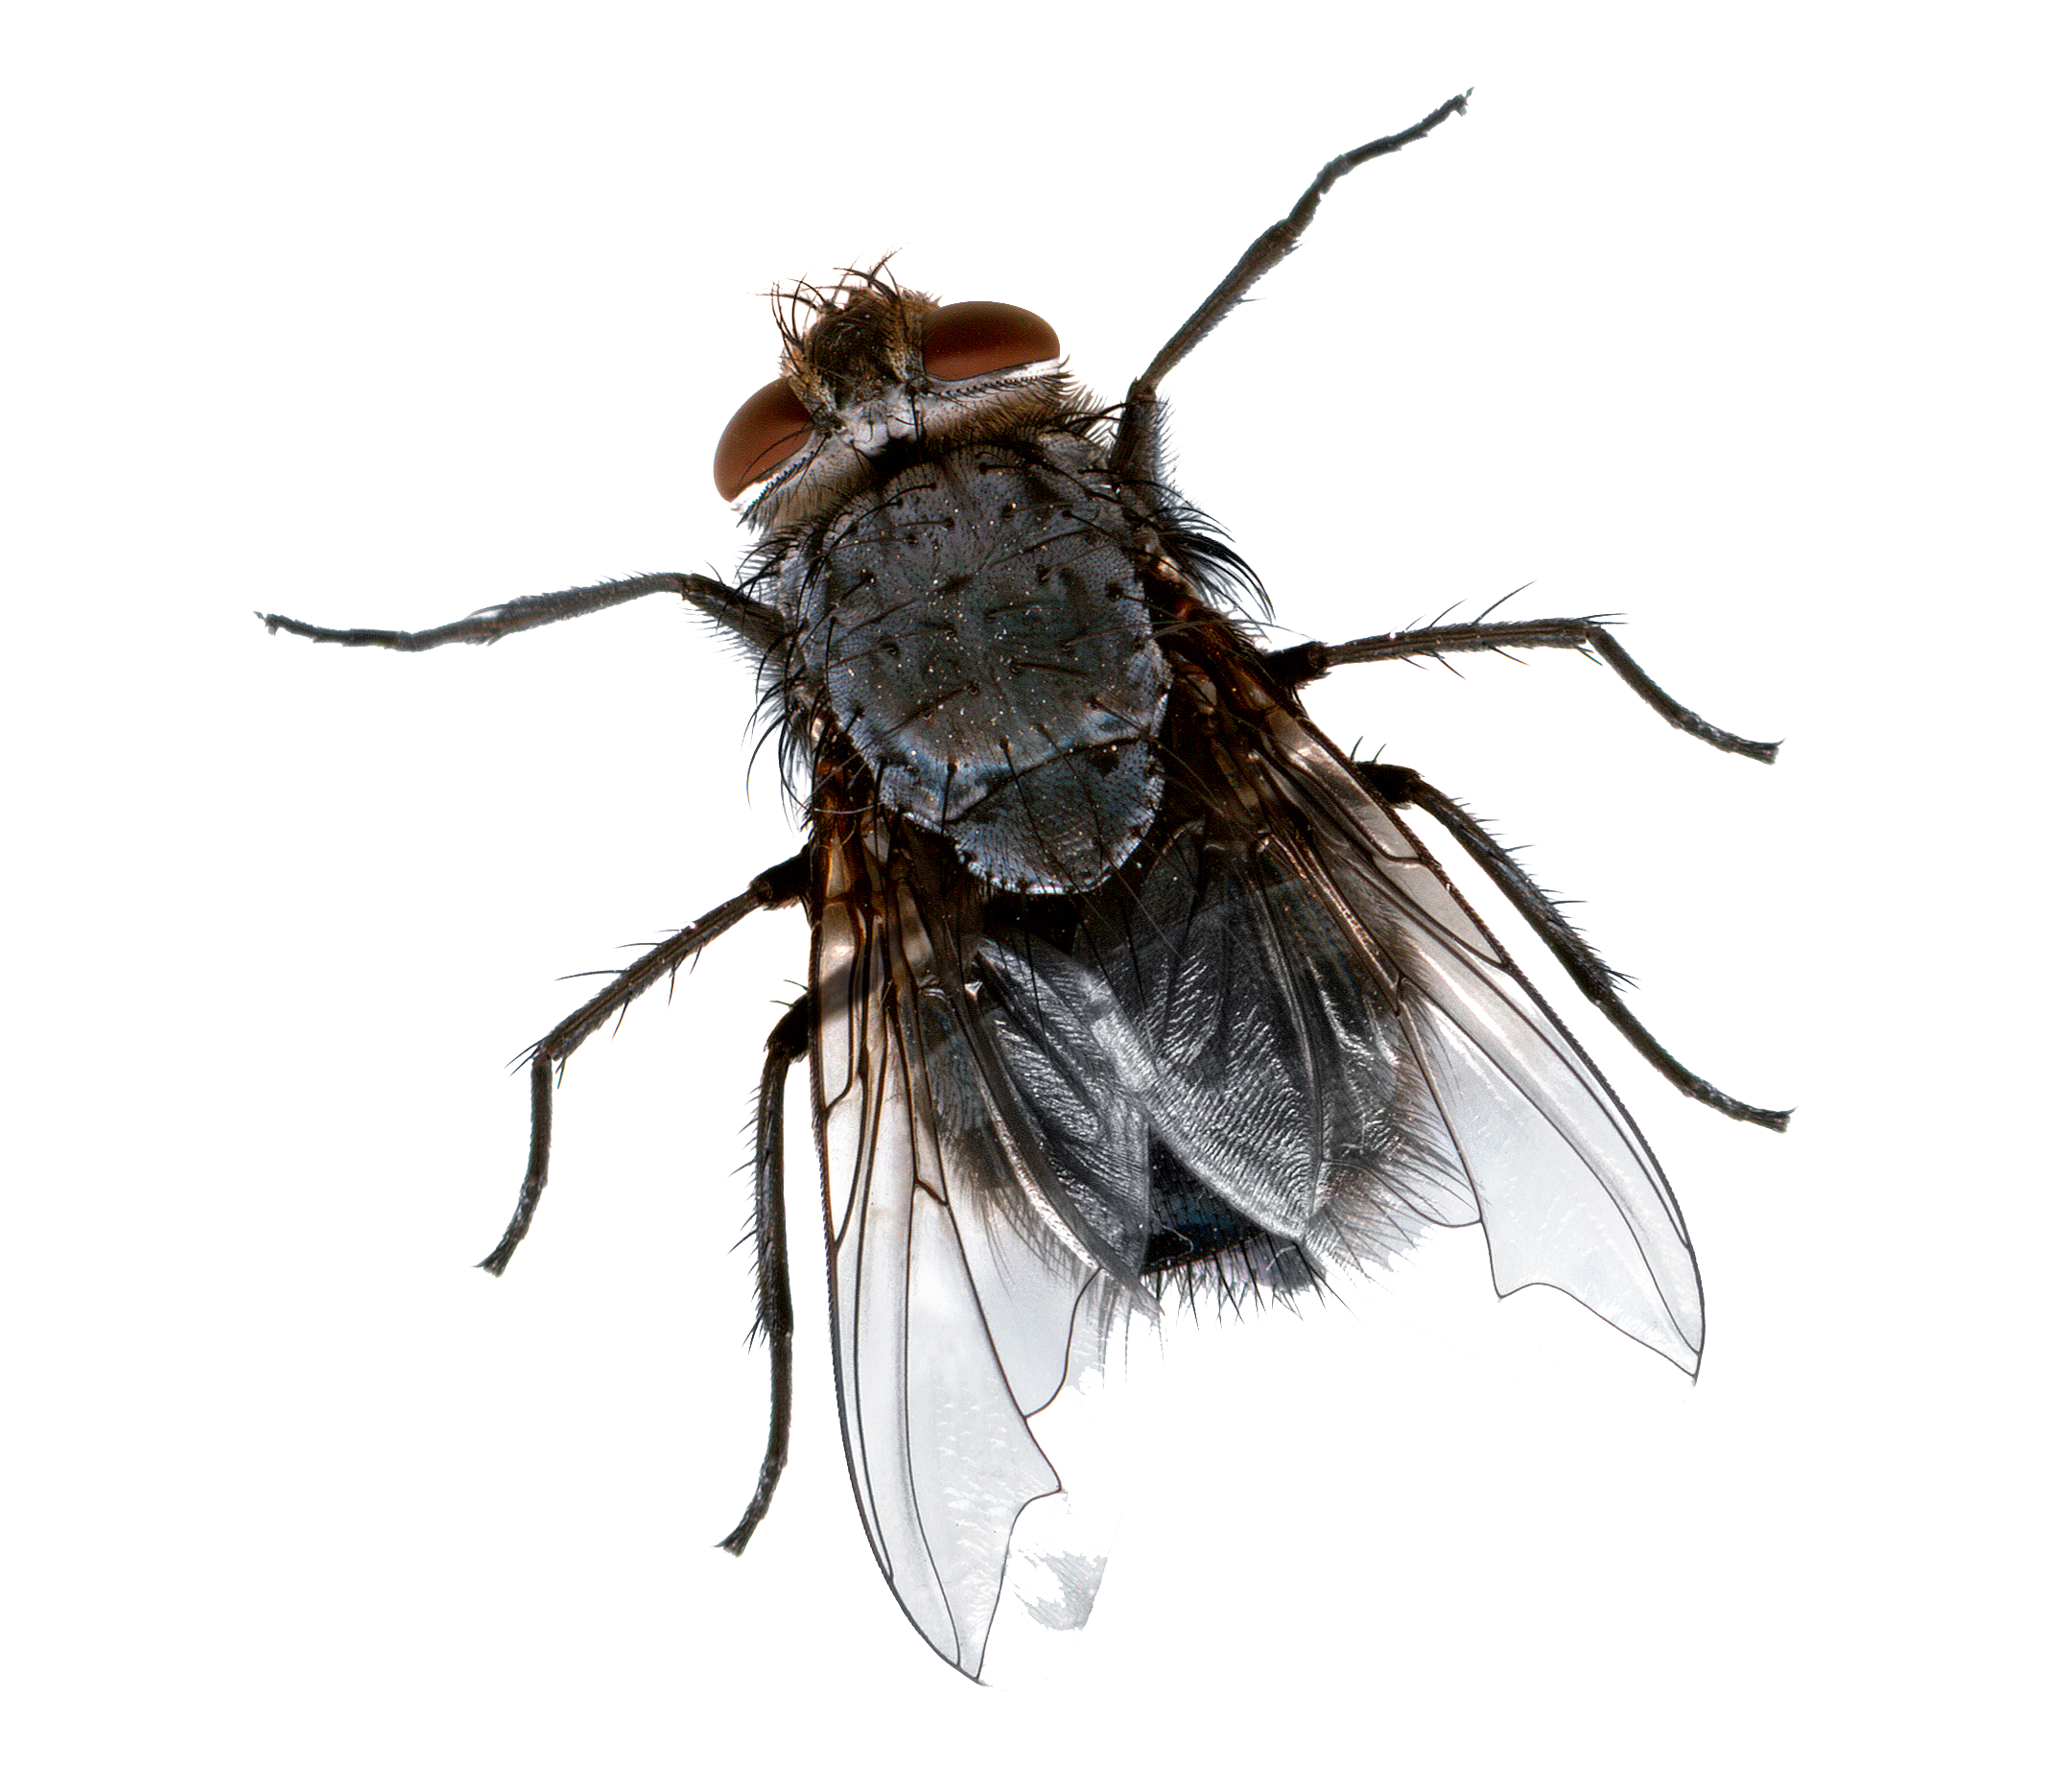 Dead fly png, Picture house fly png